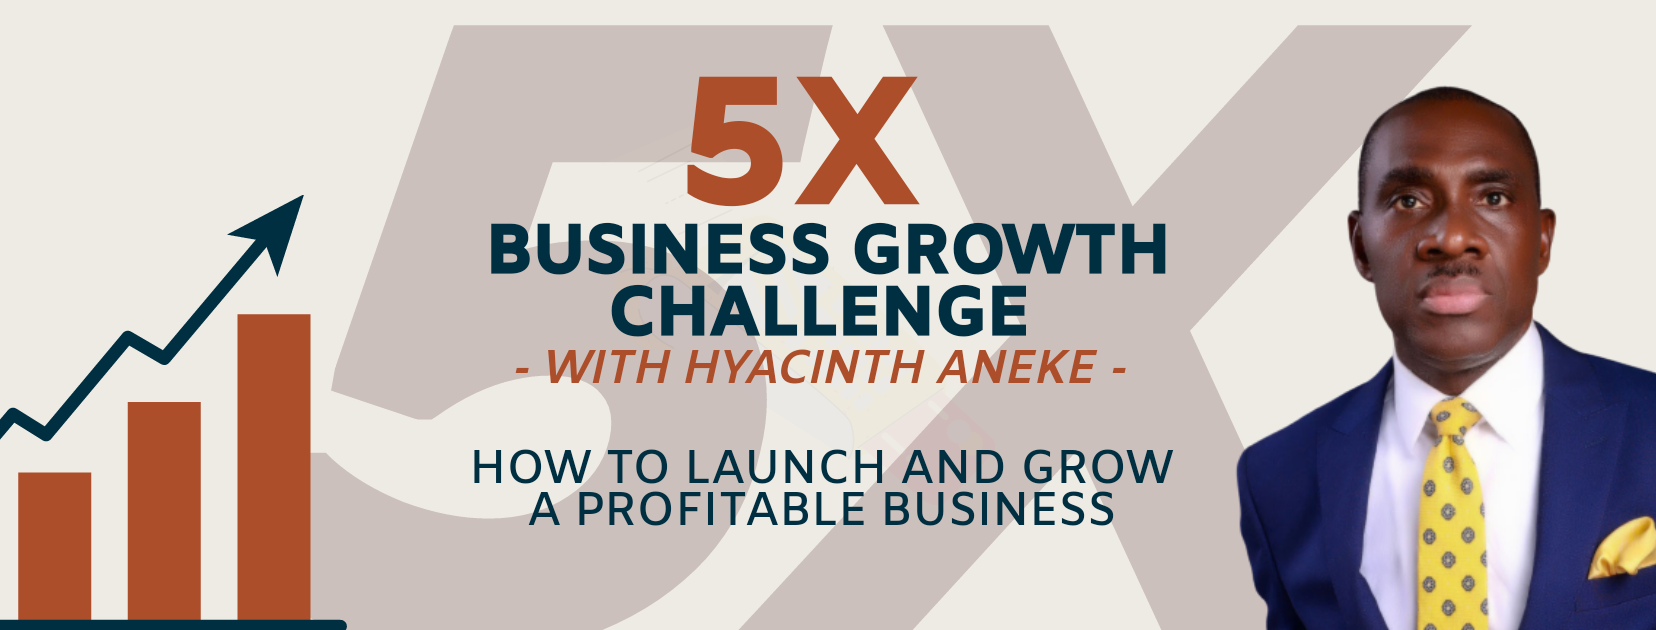 5X BUSINESS GROWTH CHALLENGE